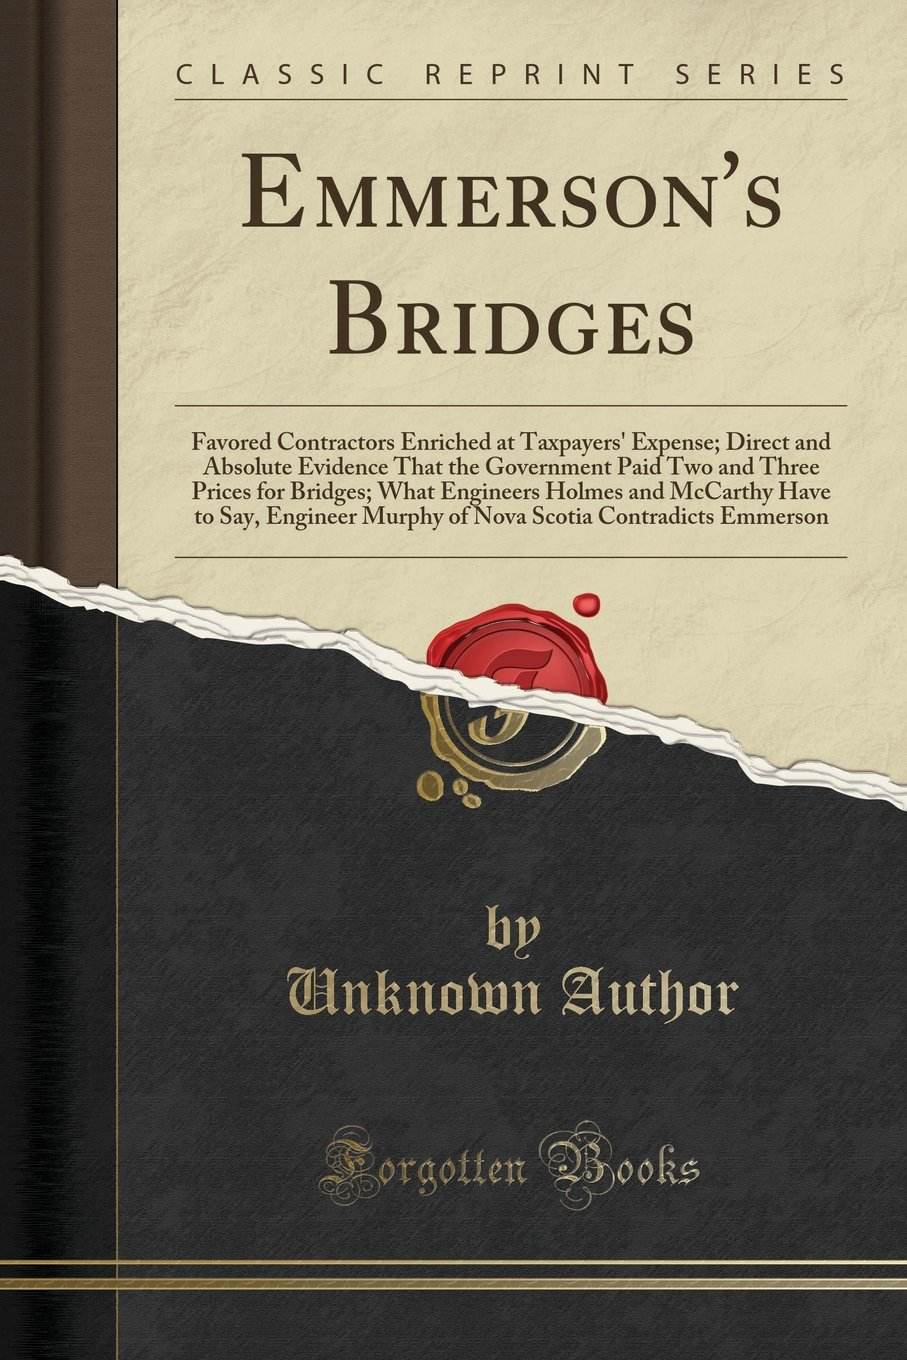 Emmerson's Bridges: Favored Contractors Enriched at Taxpayers' Expense; Direct and Absolute Evidence That the Government Paid Two and Three Prices for ... Murphy of Nova Scotia Contradicts Emme pdf